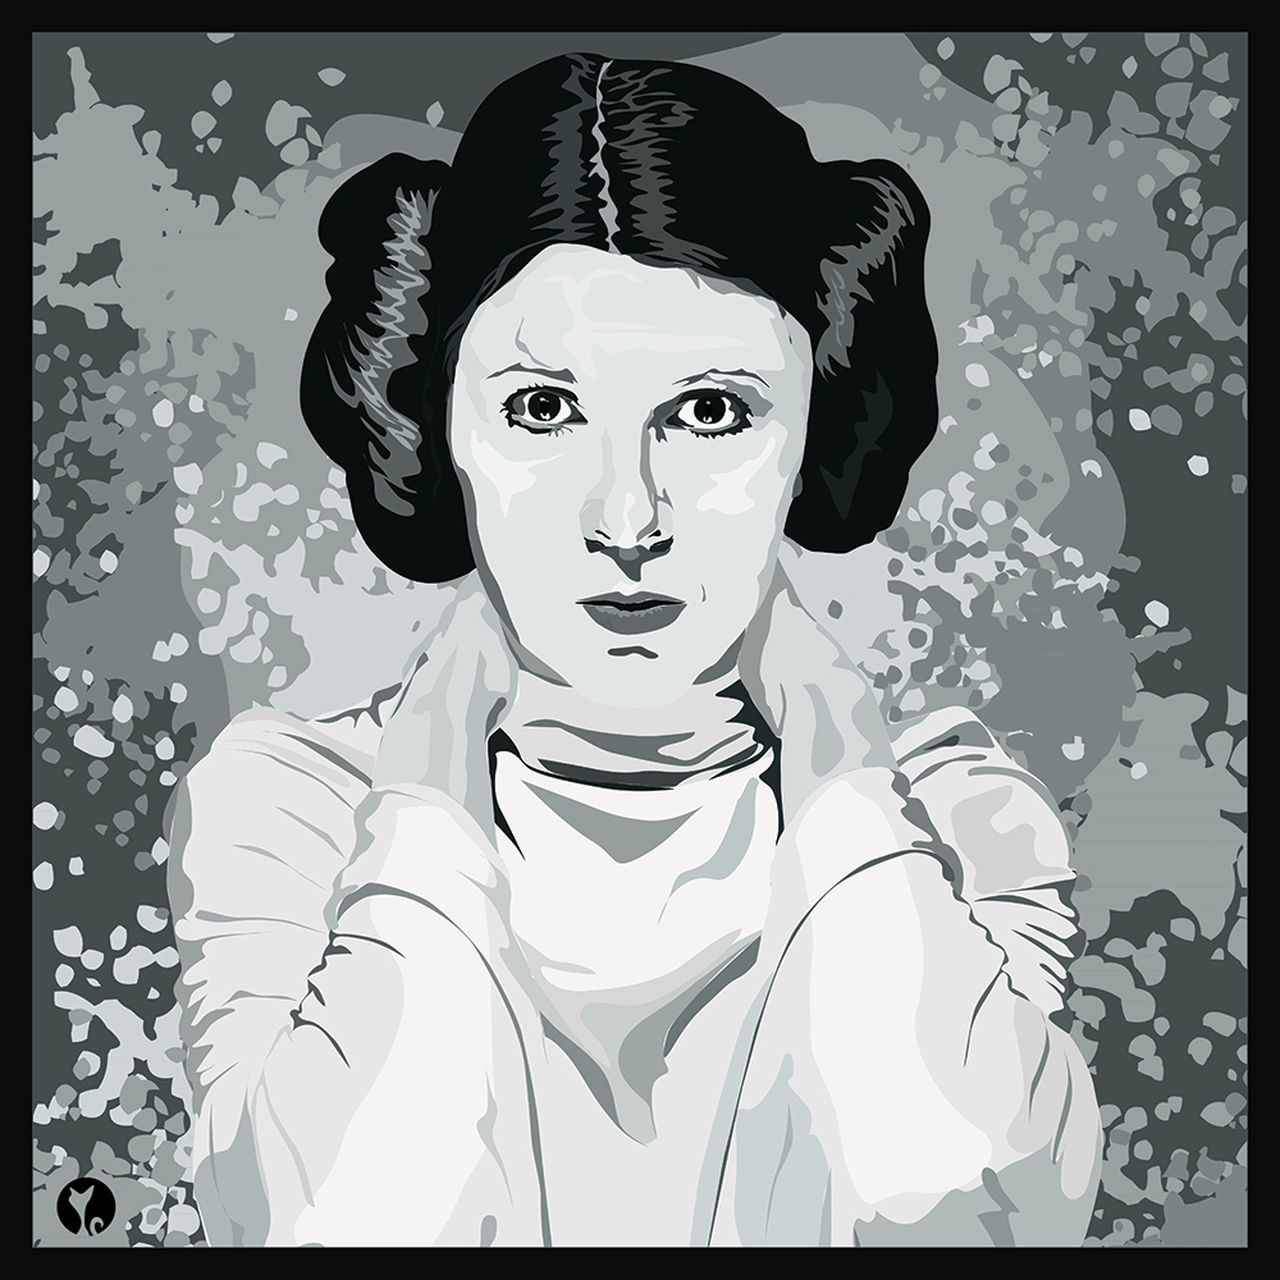 Looking At Camera Portrait Women One Person Illustration, Carrie Fisher Leiaorgana Leia Star Wars Starwars Star Wars Inspired may the force be with you